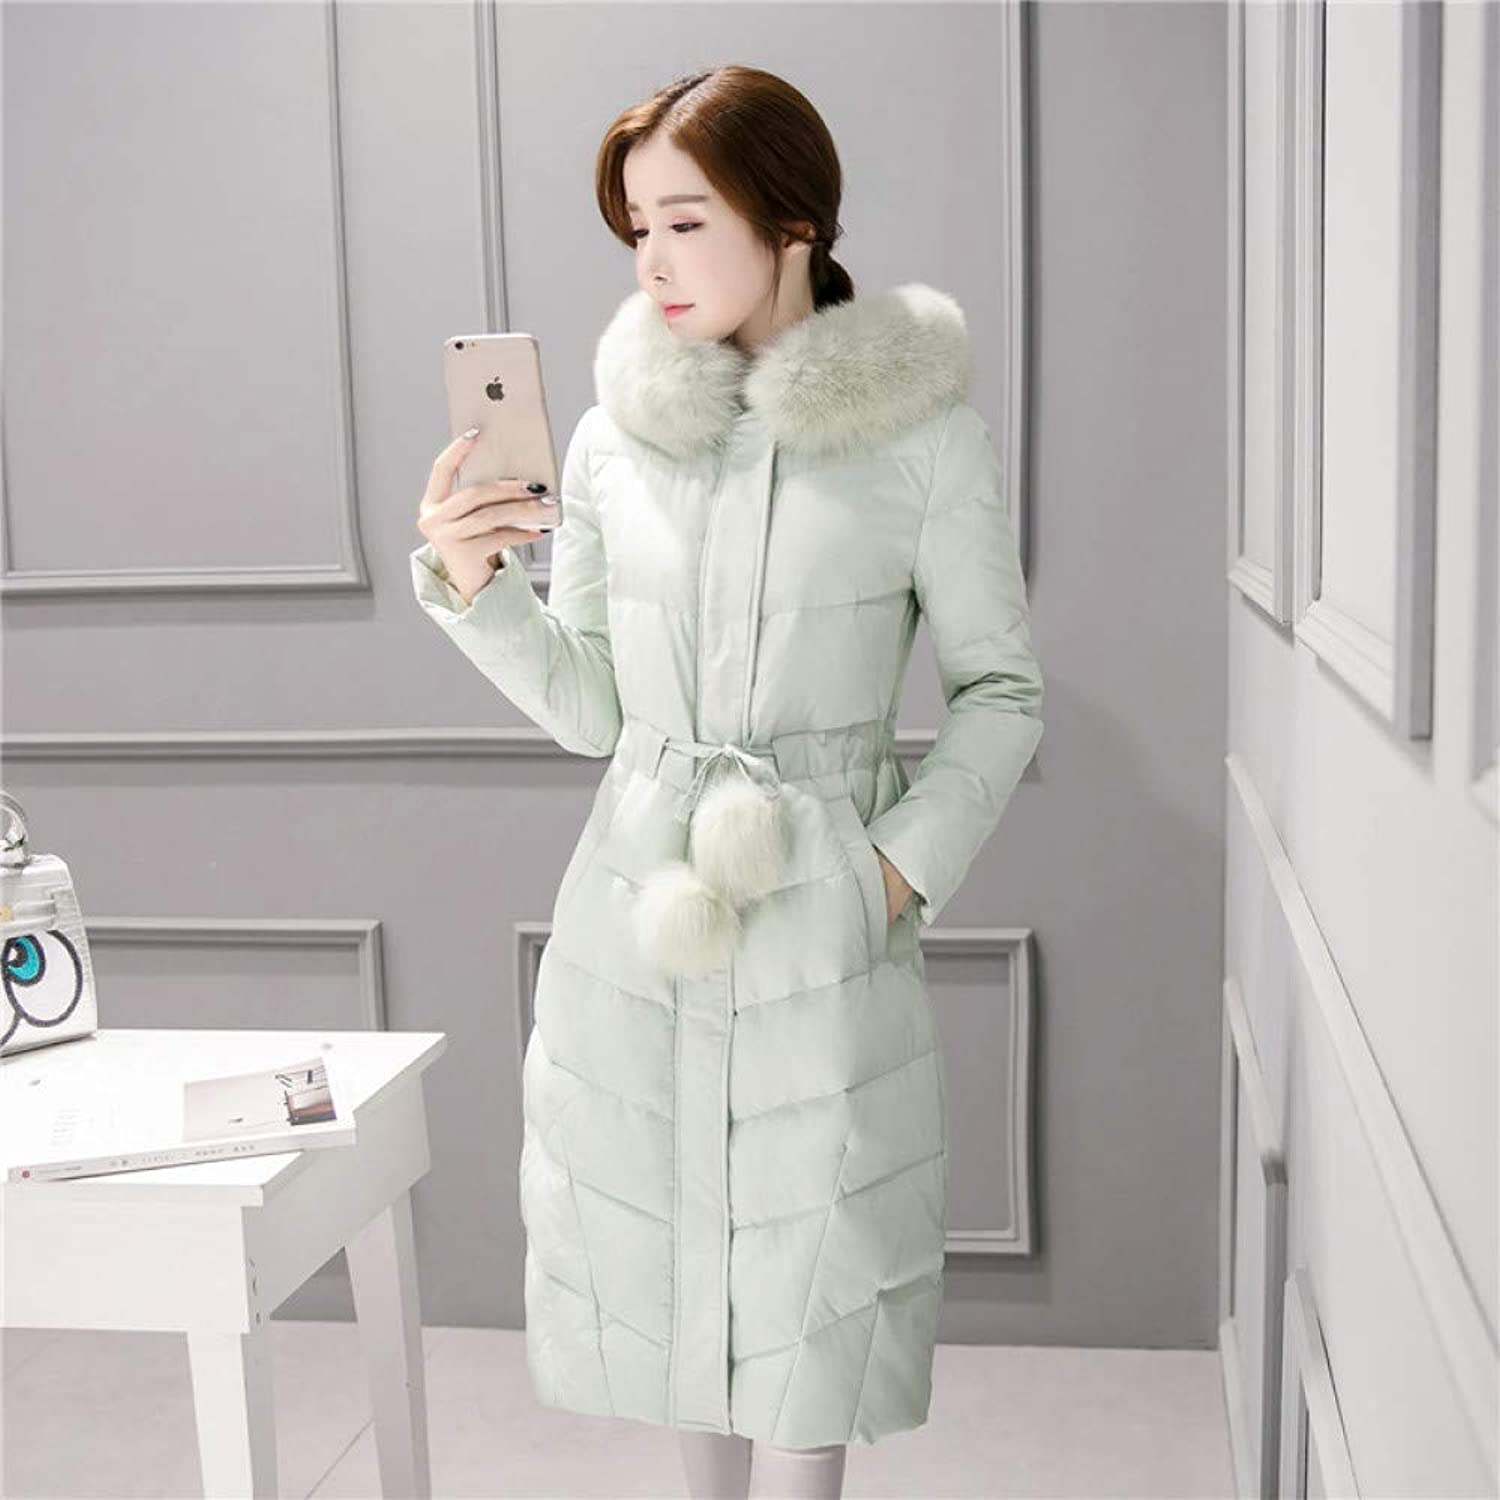 AZW@ down Jacket, Autumn and Winter Women's Long down Jacket, Thick Large Collar Large Size Coat, Slim Slim down Jacket, Jacket